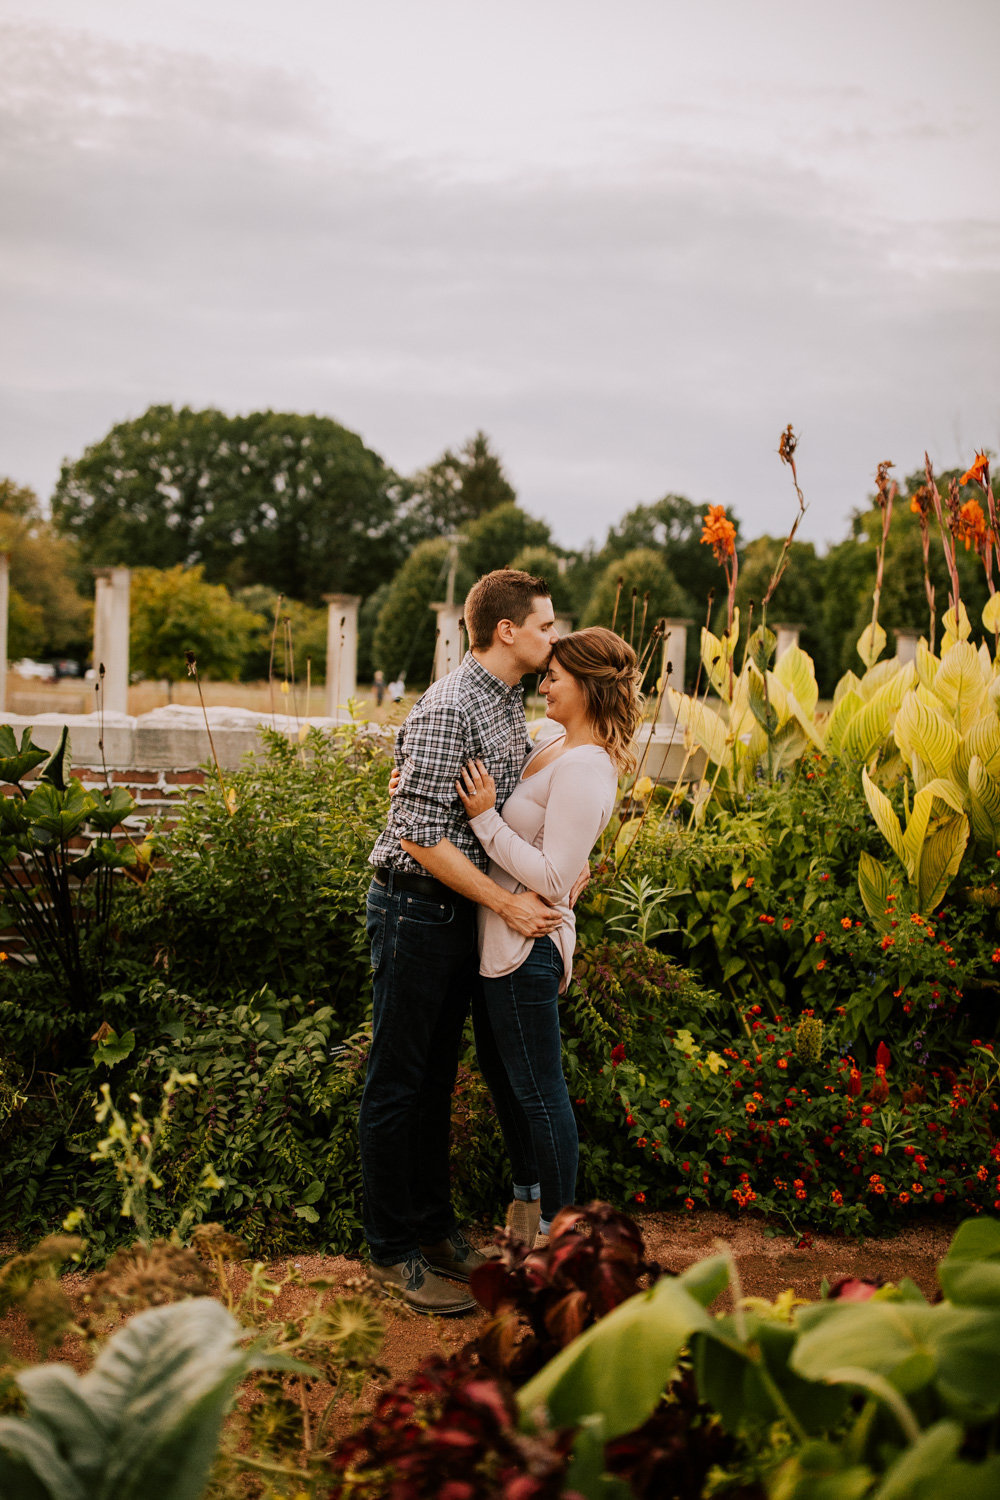 Vibrant-giggly-engagement-session-holliday-park-57